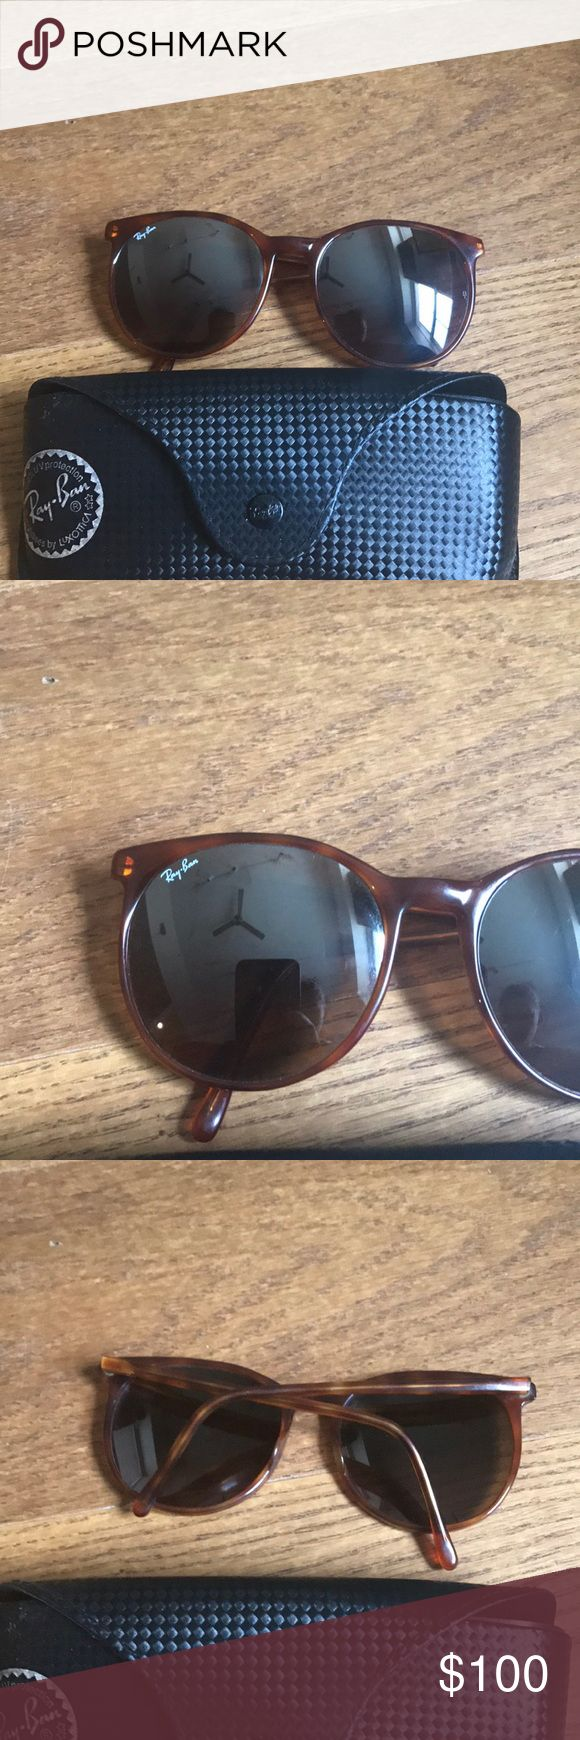 Bausch & Lomb ray bans Authentic vintage, rounded tortoise frames, mirrored lenses. SUPER RARE. Made in USA. Good very lightly used condition Ray-Ban Accessories Sunglasses